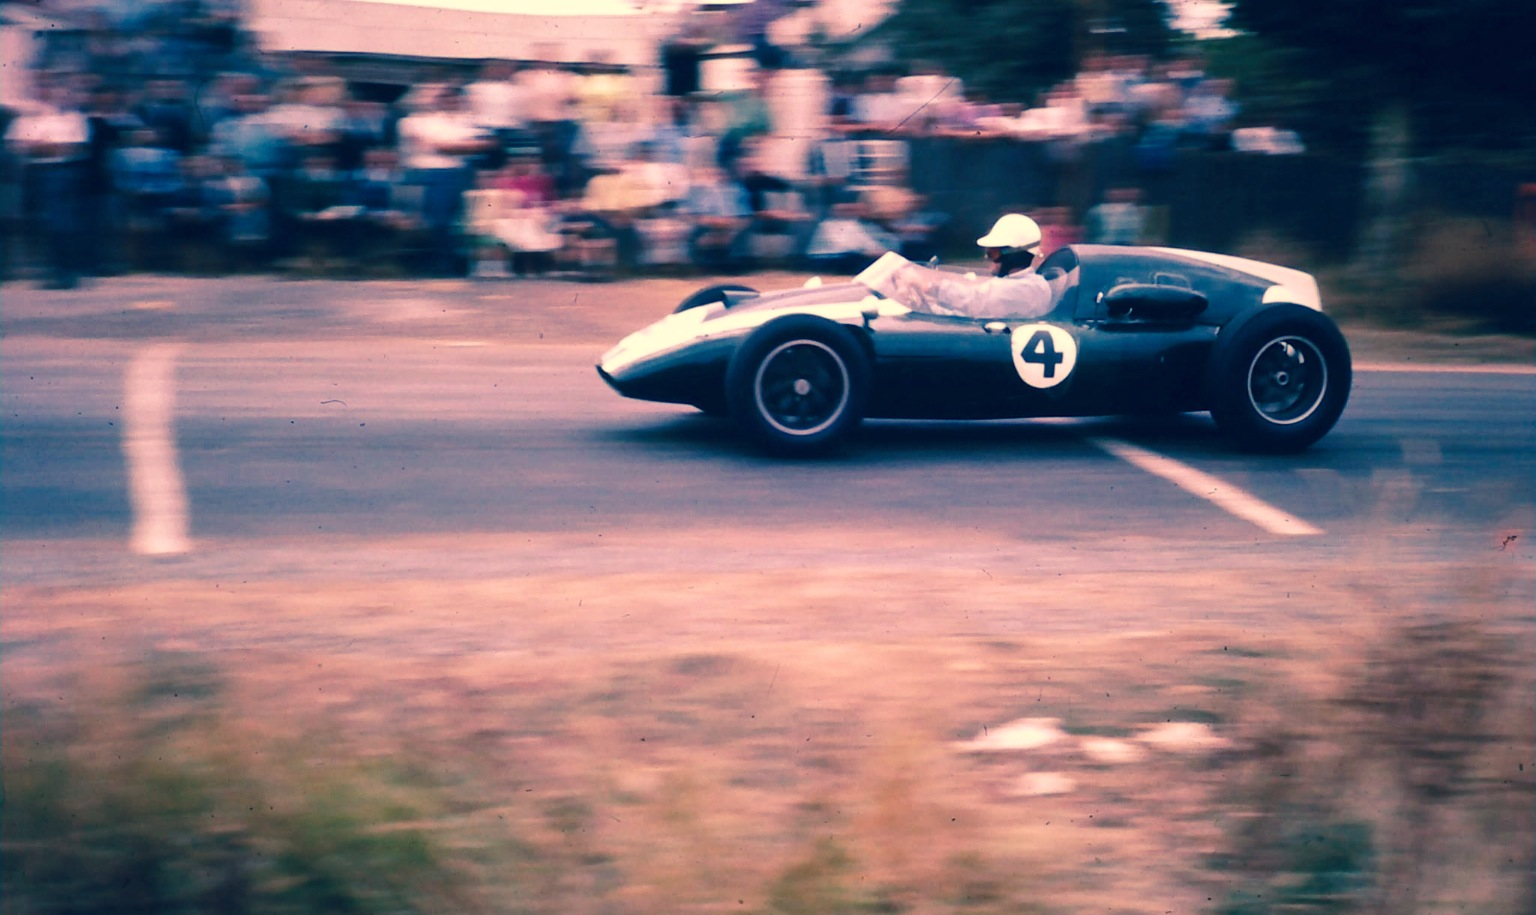 jack-brabham-cooper-t51-climax-on-the-approach-to-pub-corner-longford-1960.jpg